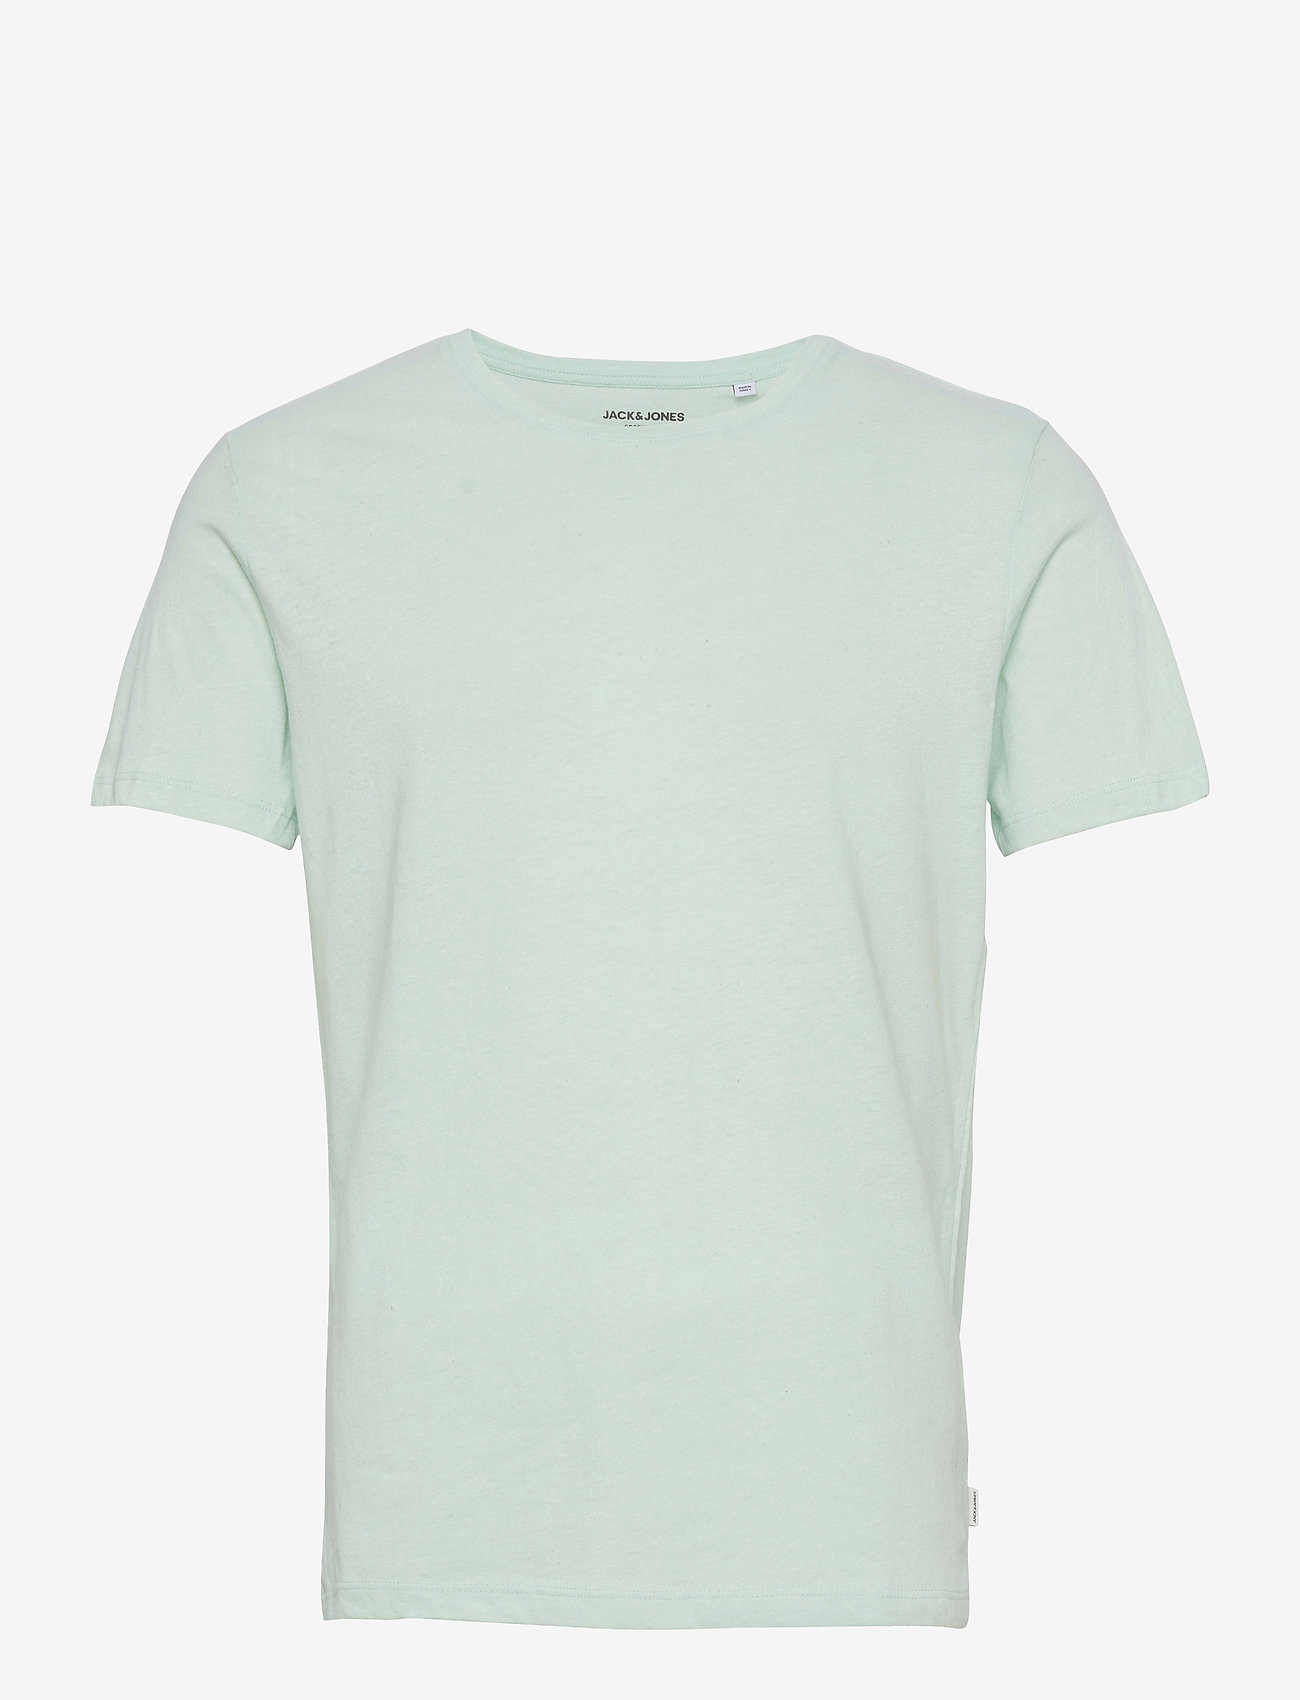 Jack & Jones - JJELINEN BASIC TEE SS CREW NECK STS - basic t-shirts - bleached aqua - 0